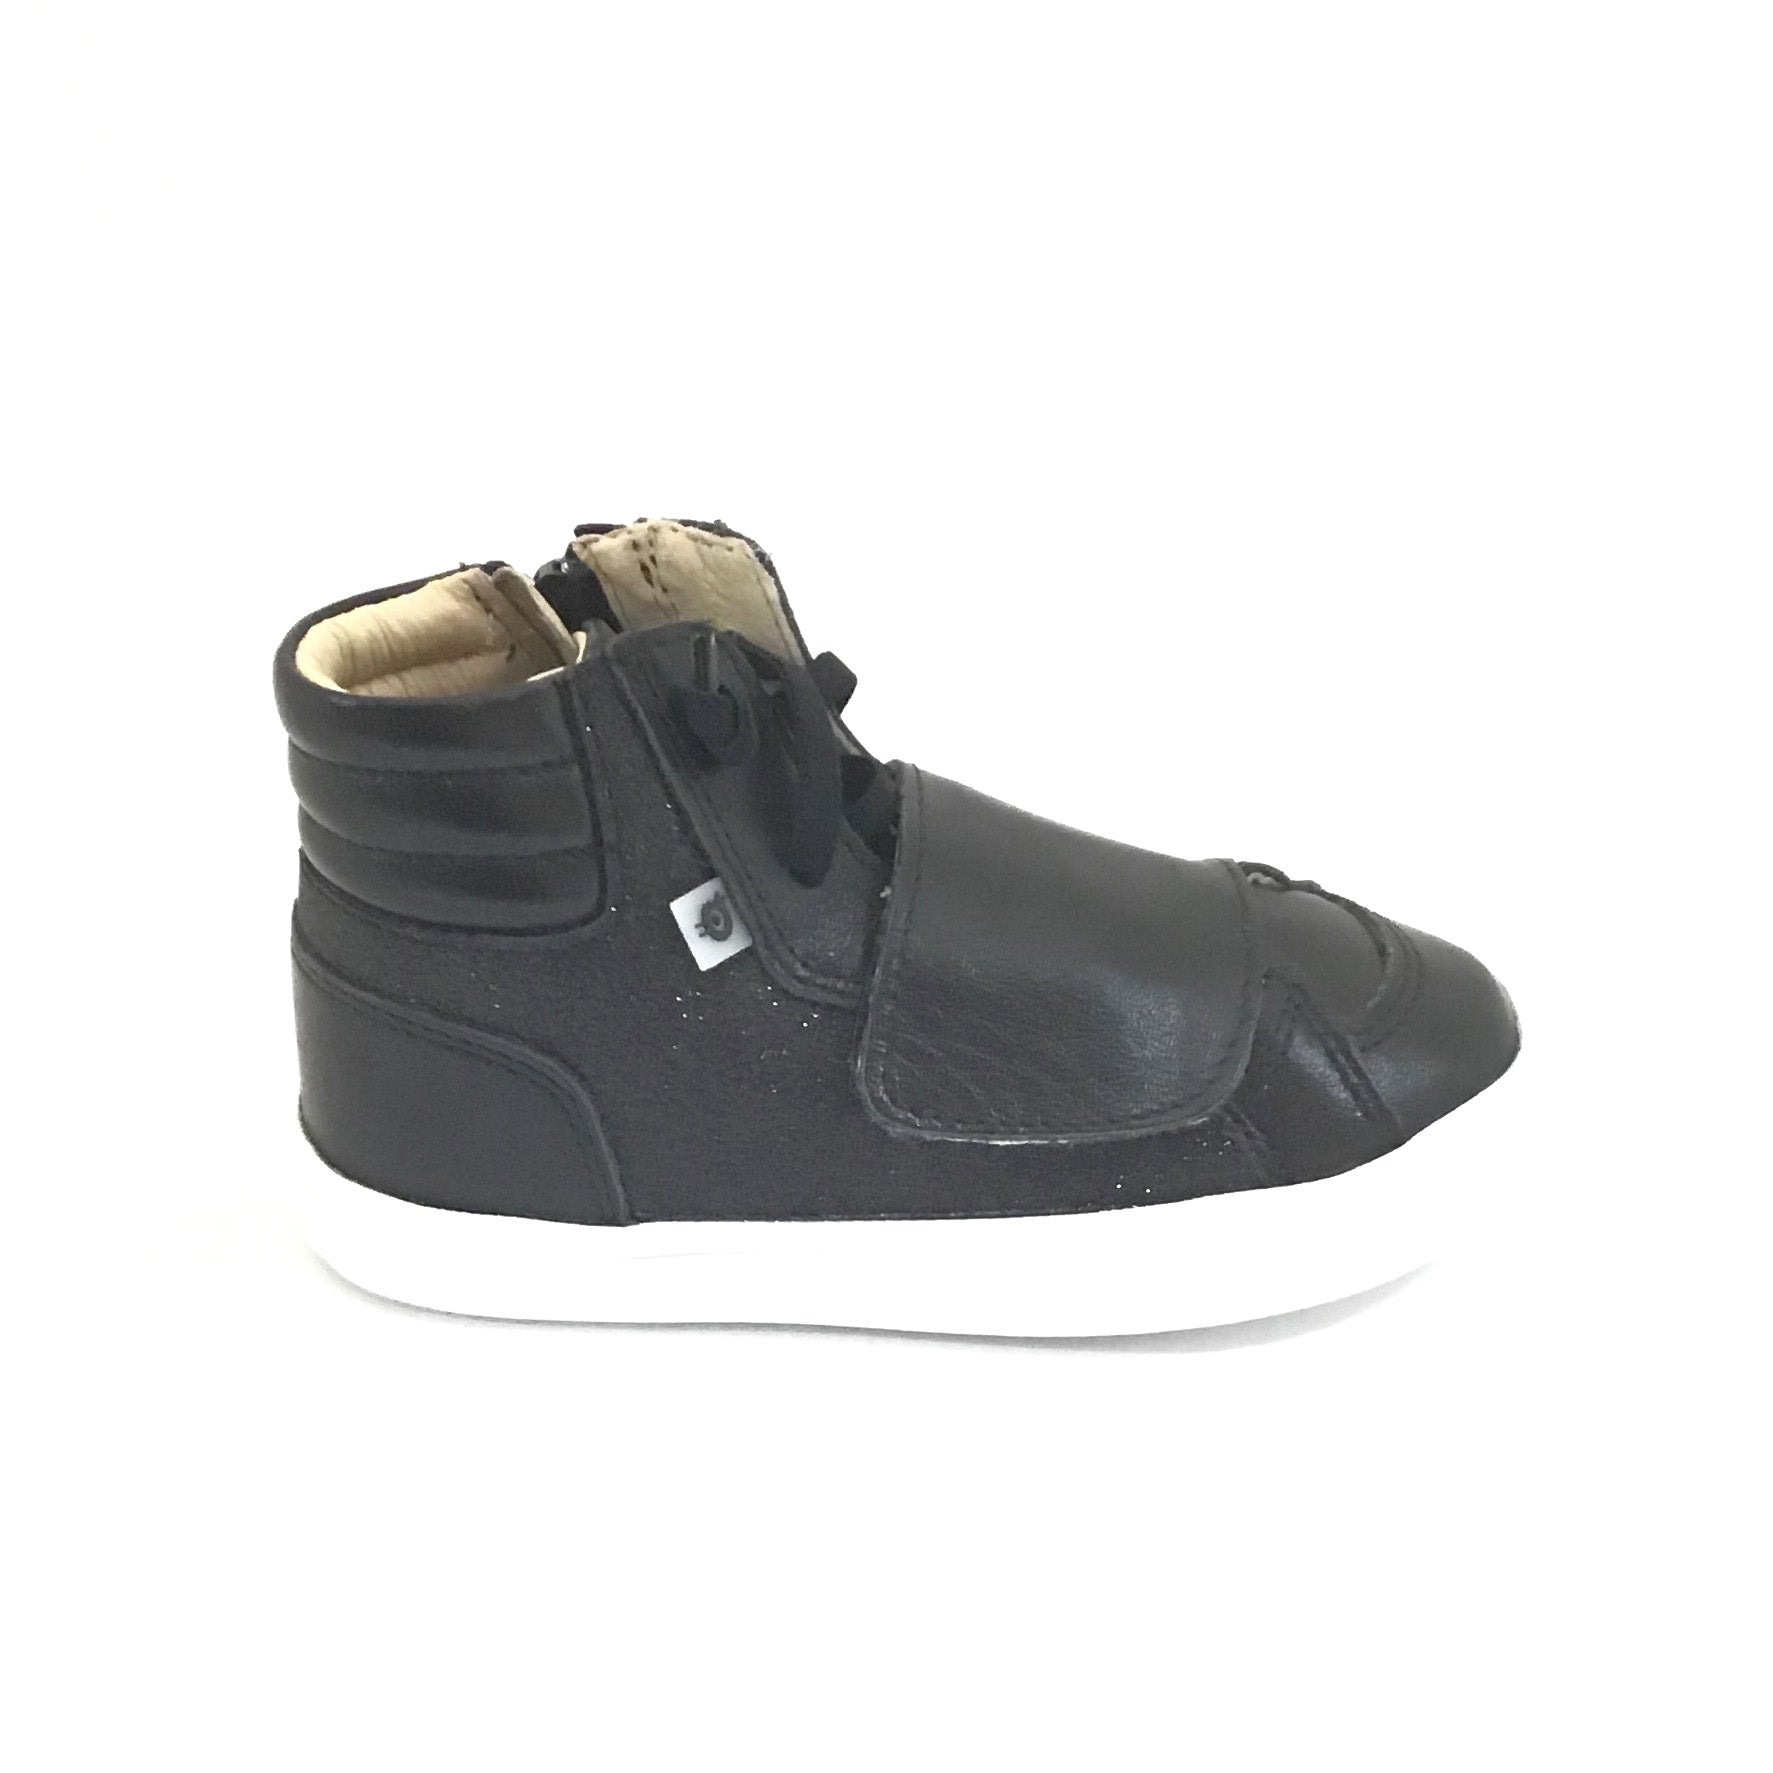 Old Soles Black High Top Sneaker with Velcro Strap and Laces